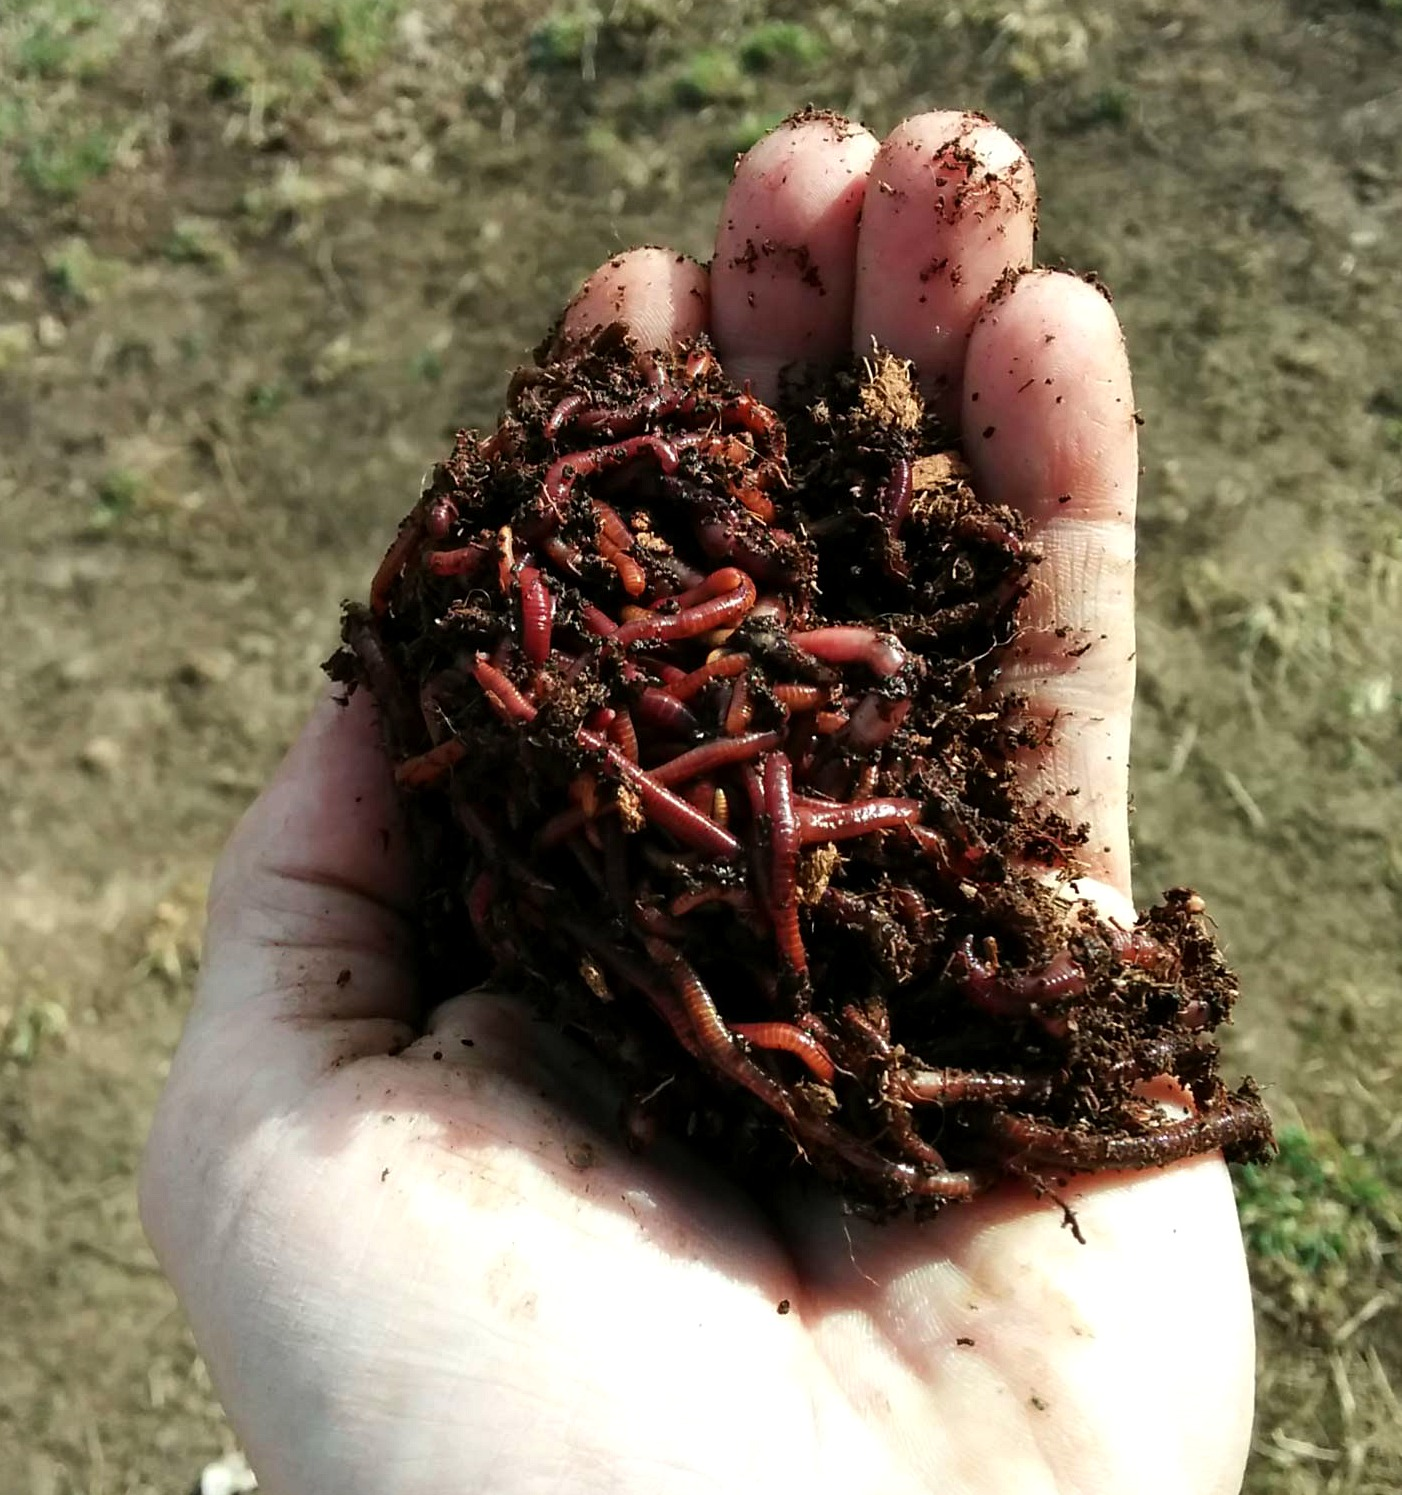 Red Wigglers from the book The Worm Farming Revolution